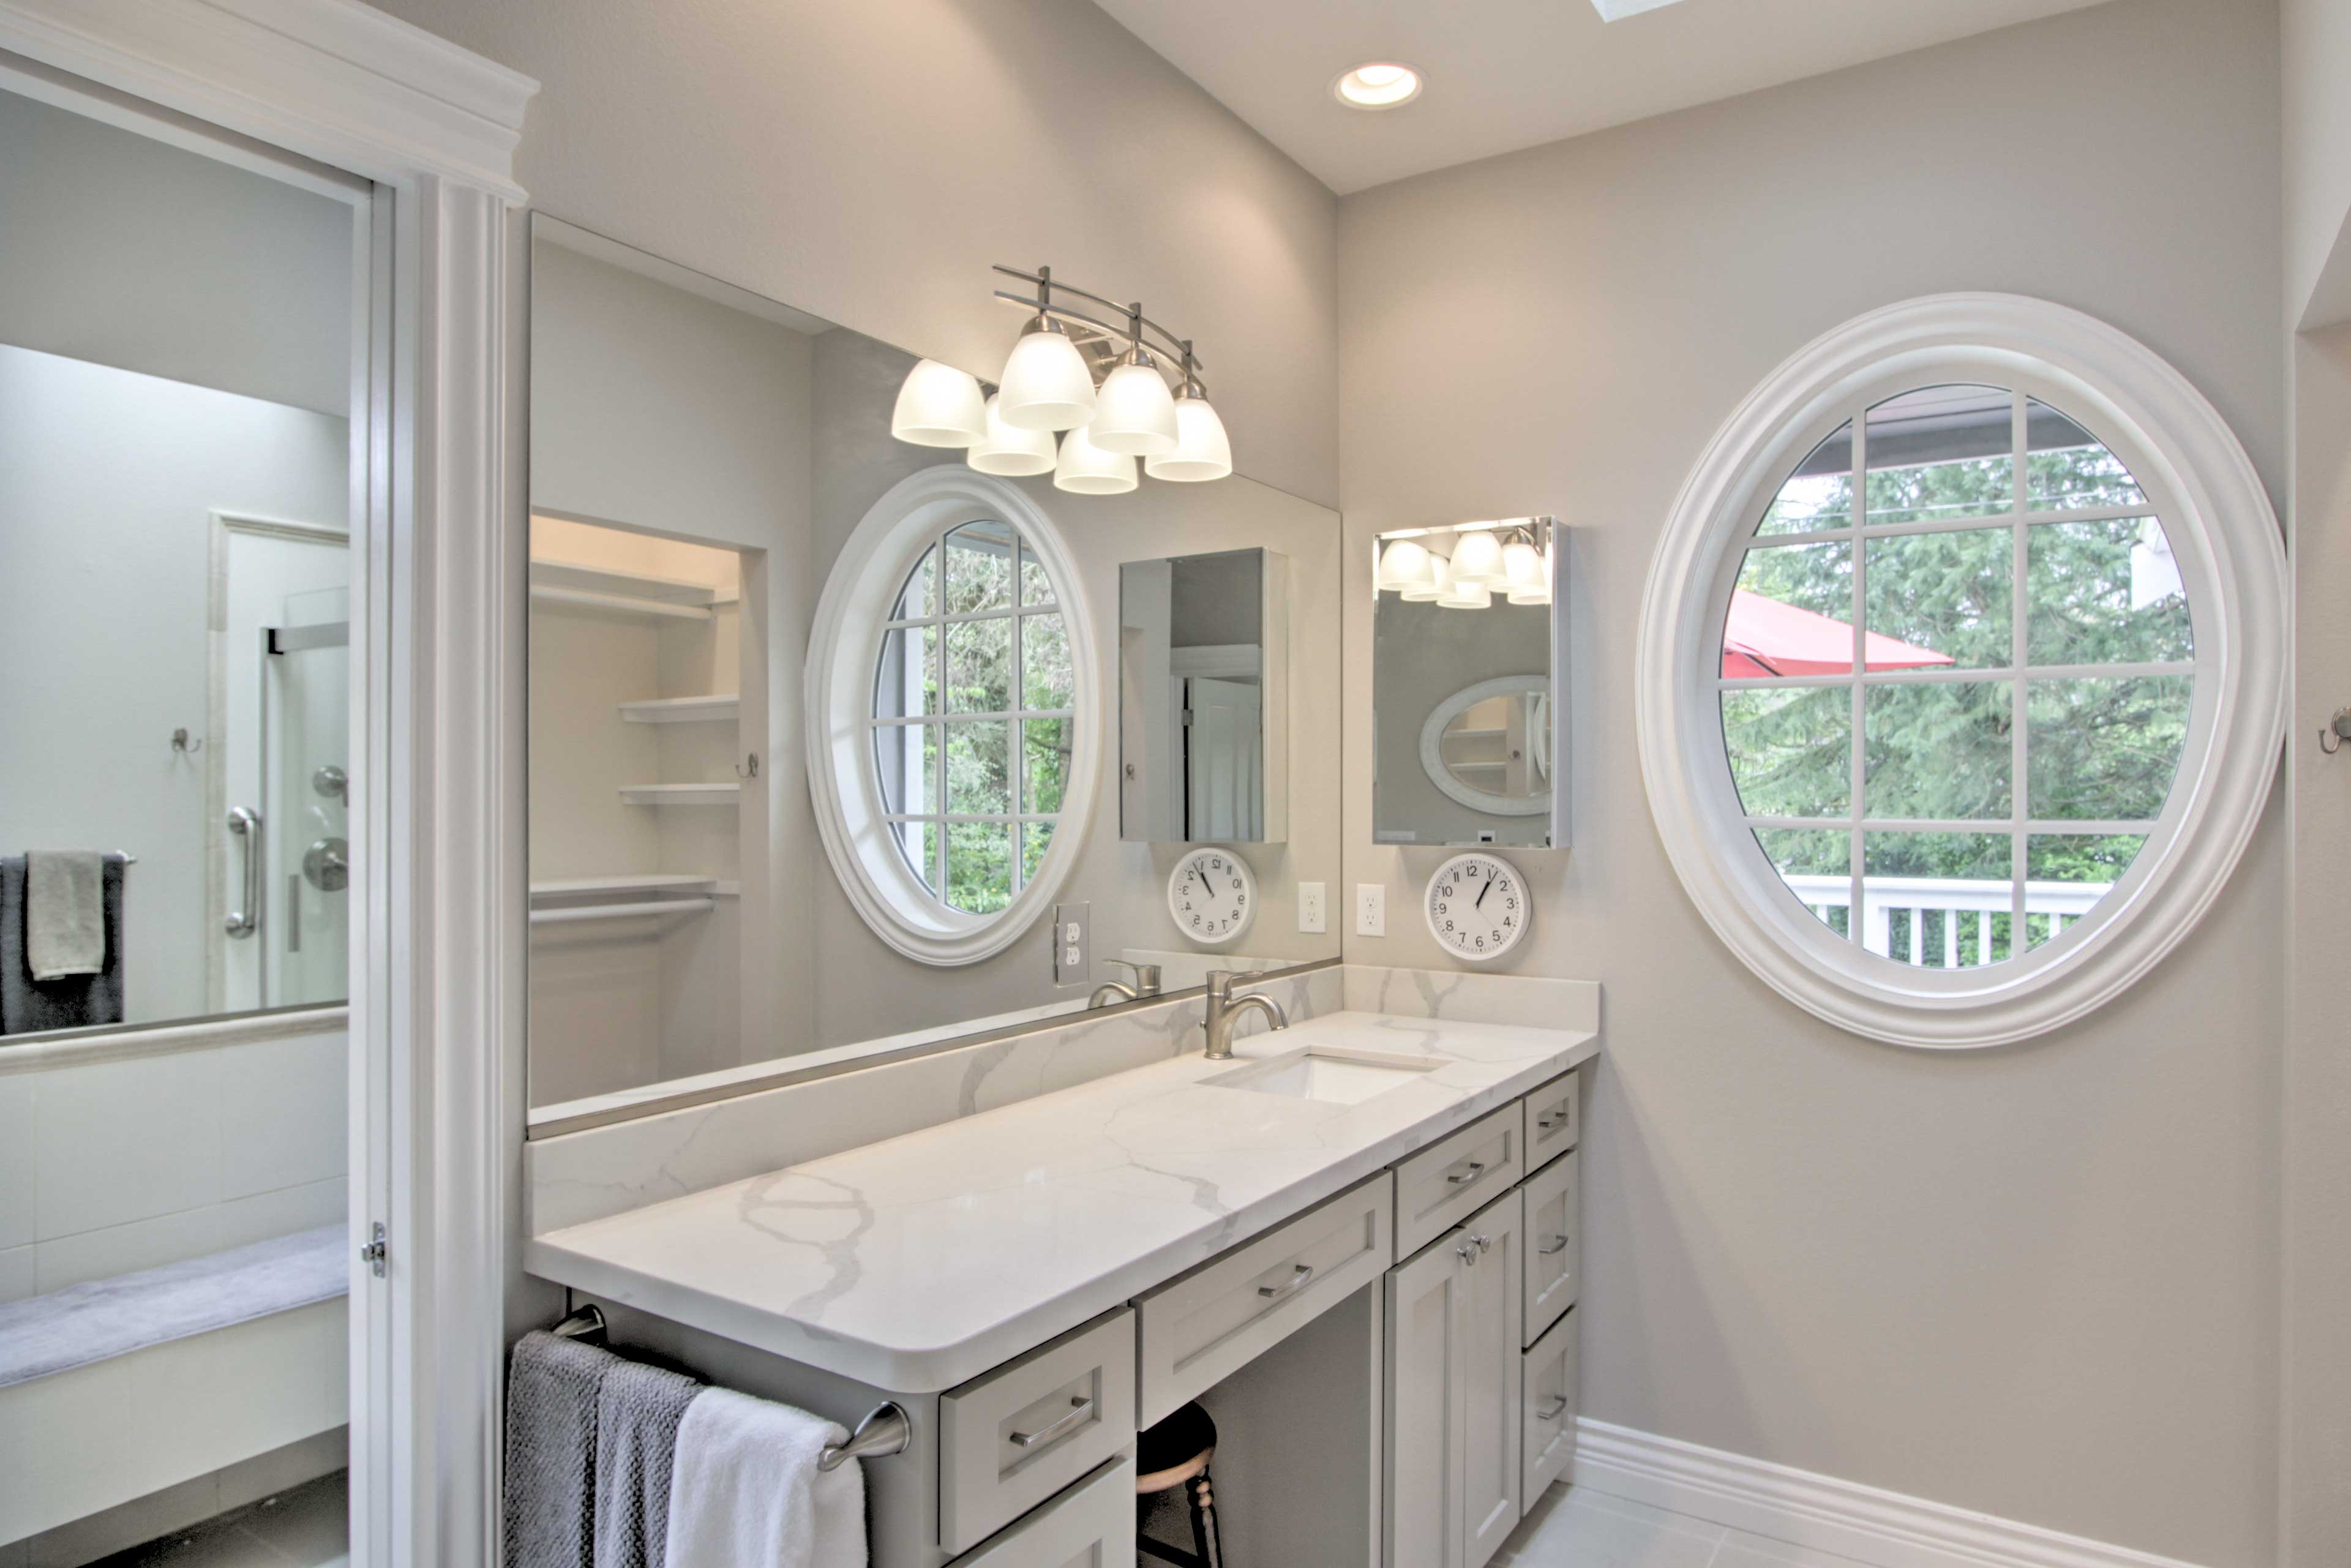 Rinse away the day in this tastefully furnished bathroom.